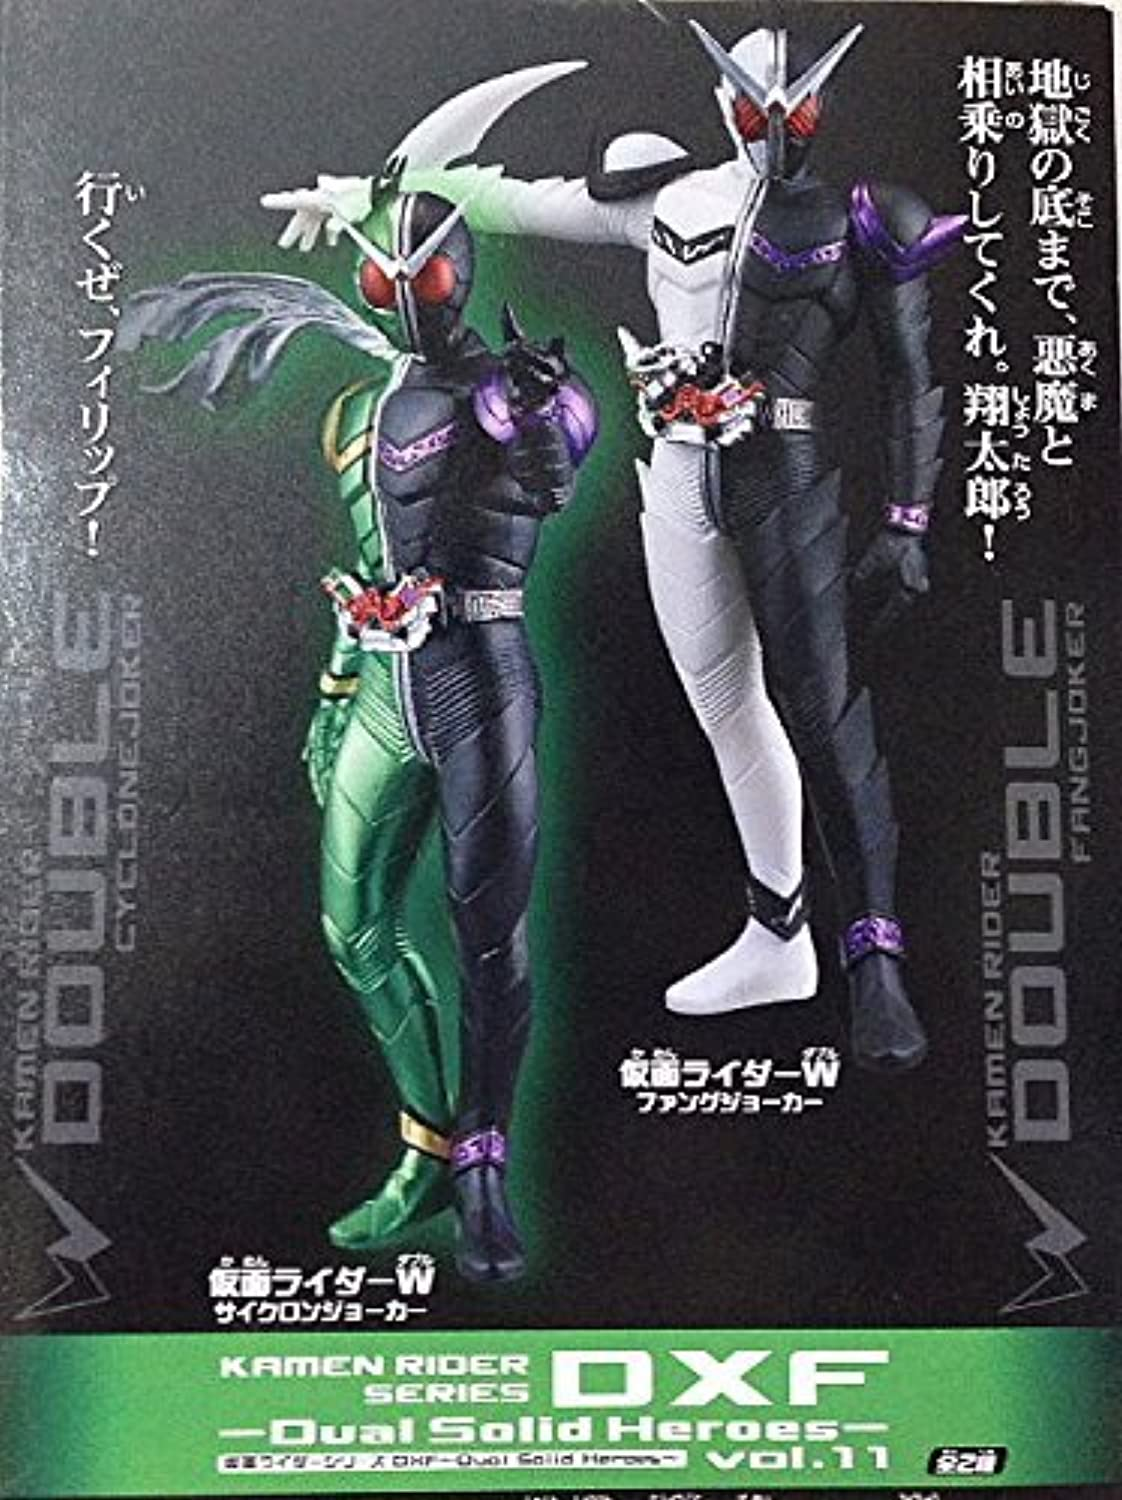 Rider series DXF  Dual Solid Heroes  vol.11 all two Fang Joker Cyclone Joker